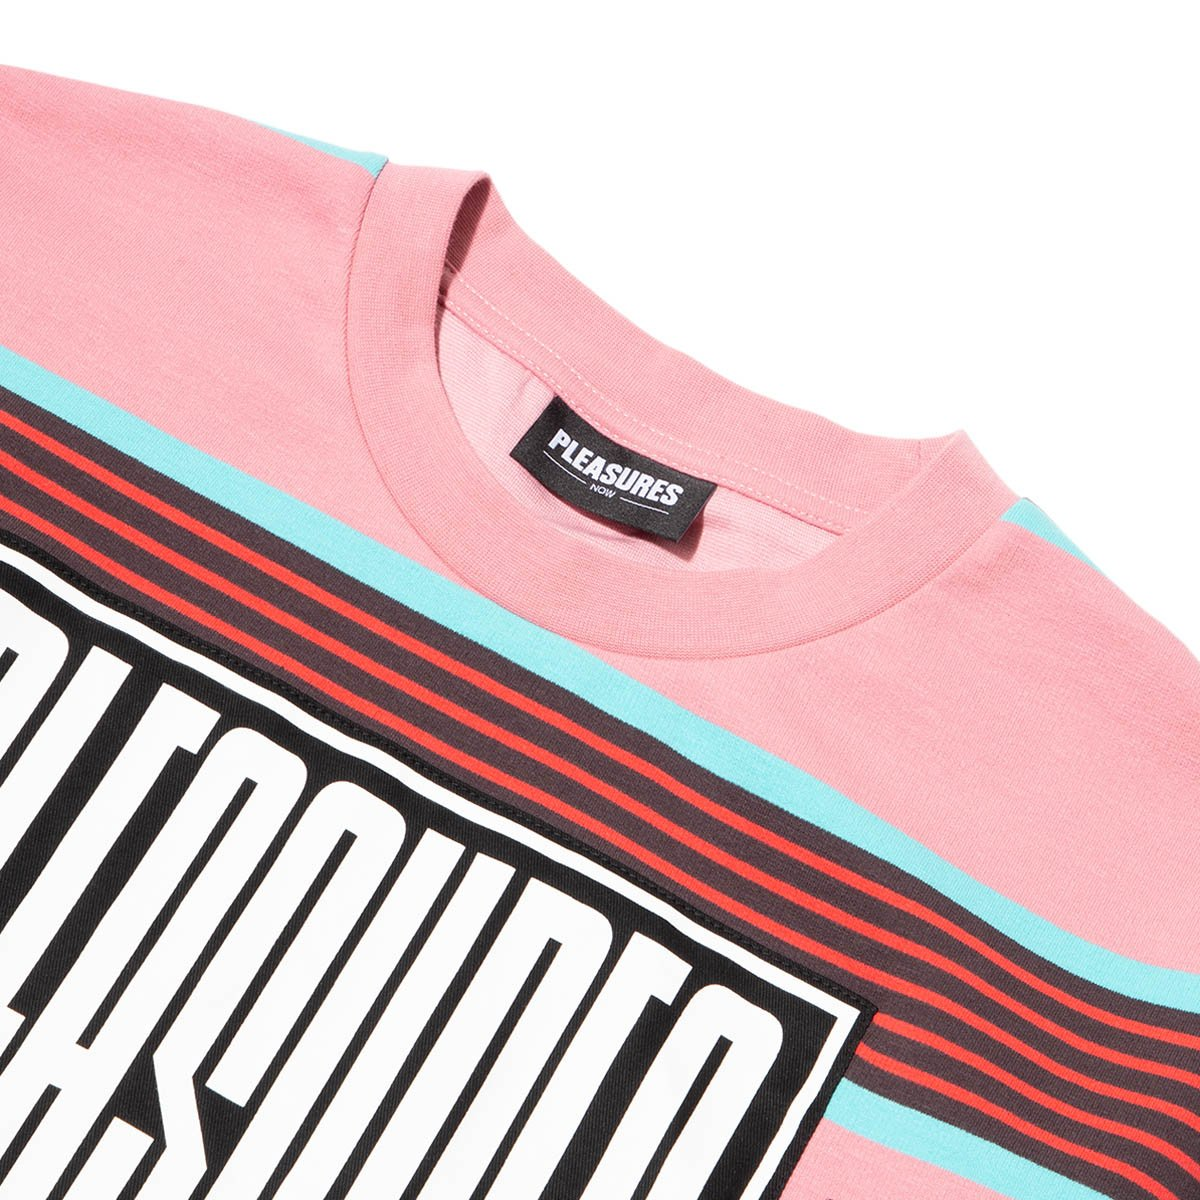 Pleasures Electronic Striped Shirt Pink